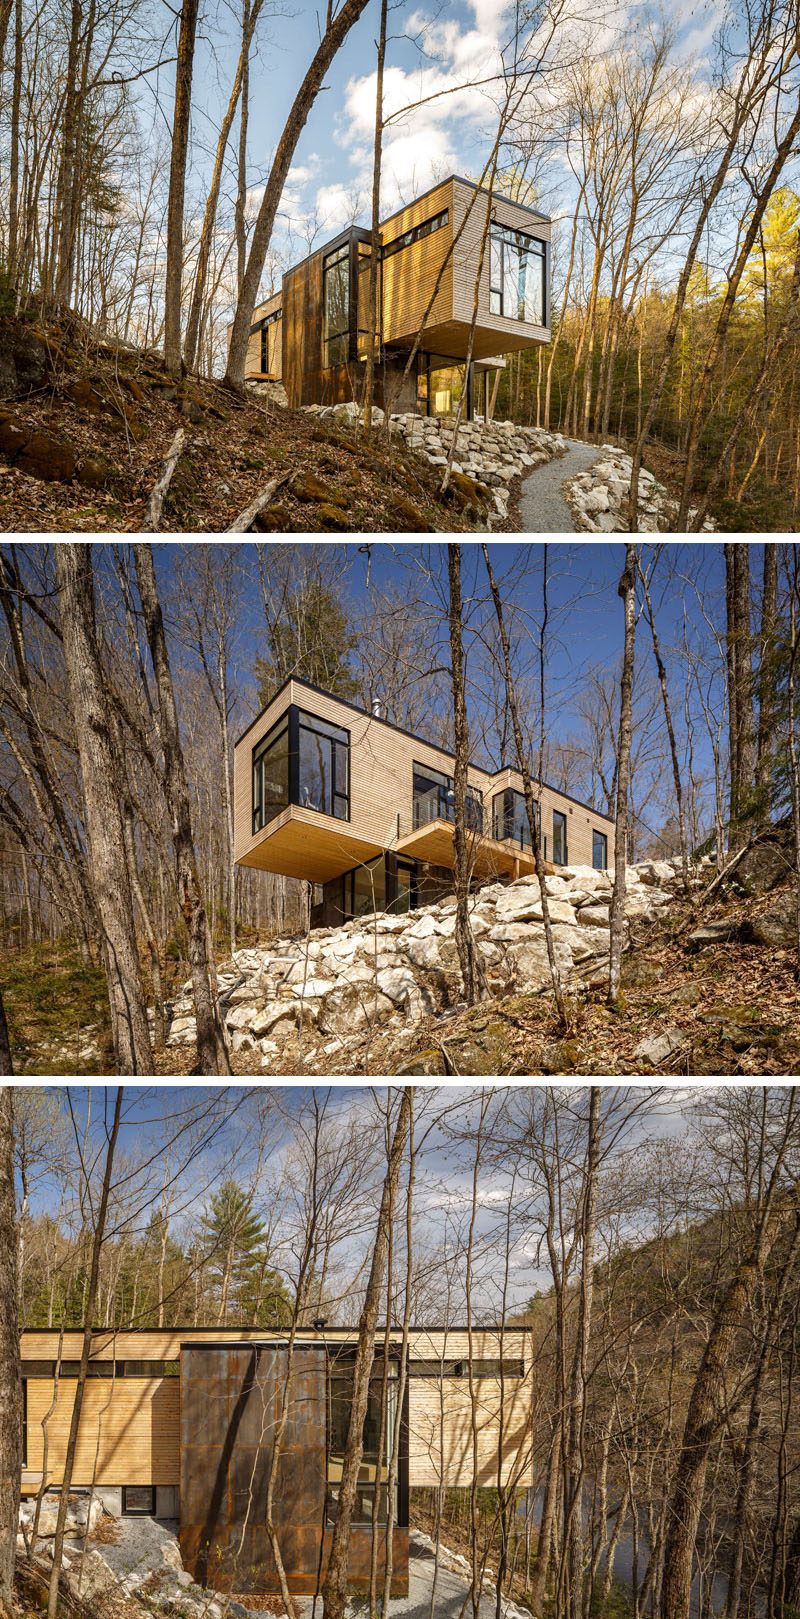 18 Modern House In The Forest // The trees of the forest around this house help filter the natural light that streams into the home. #ModernHouse #ModernArchitecture #HouseInForest #HouseDesign